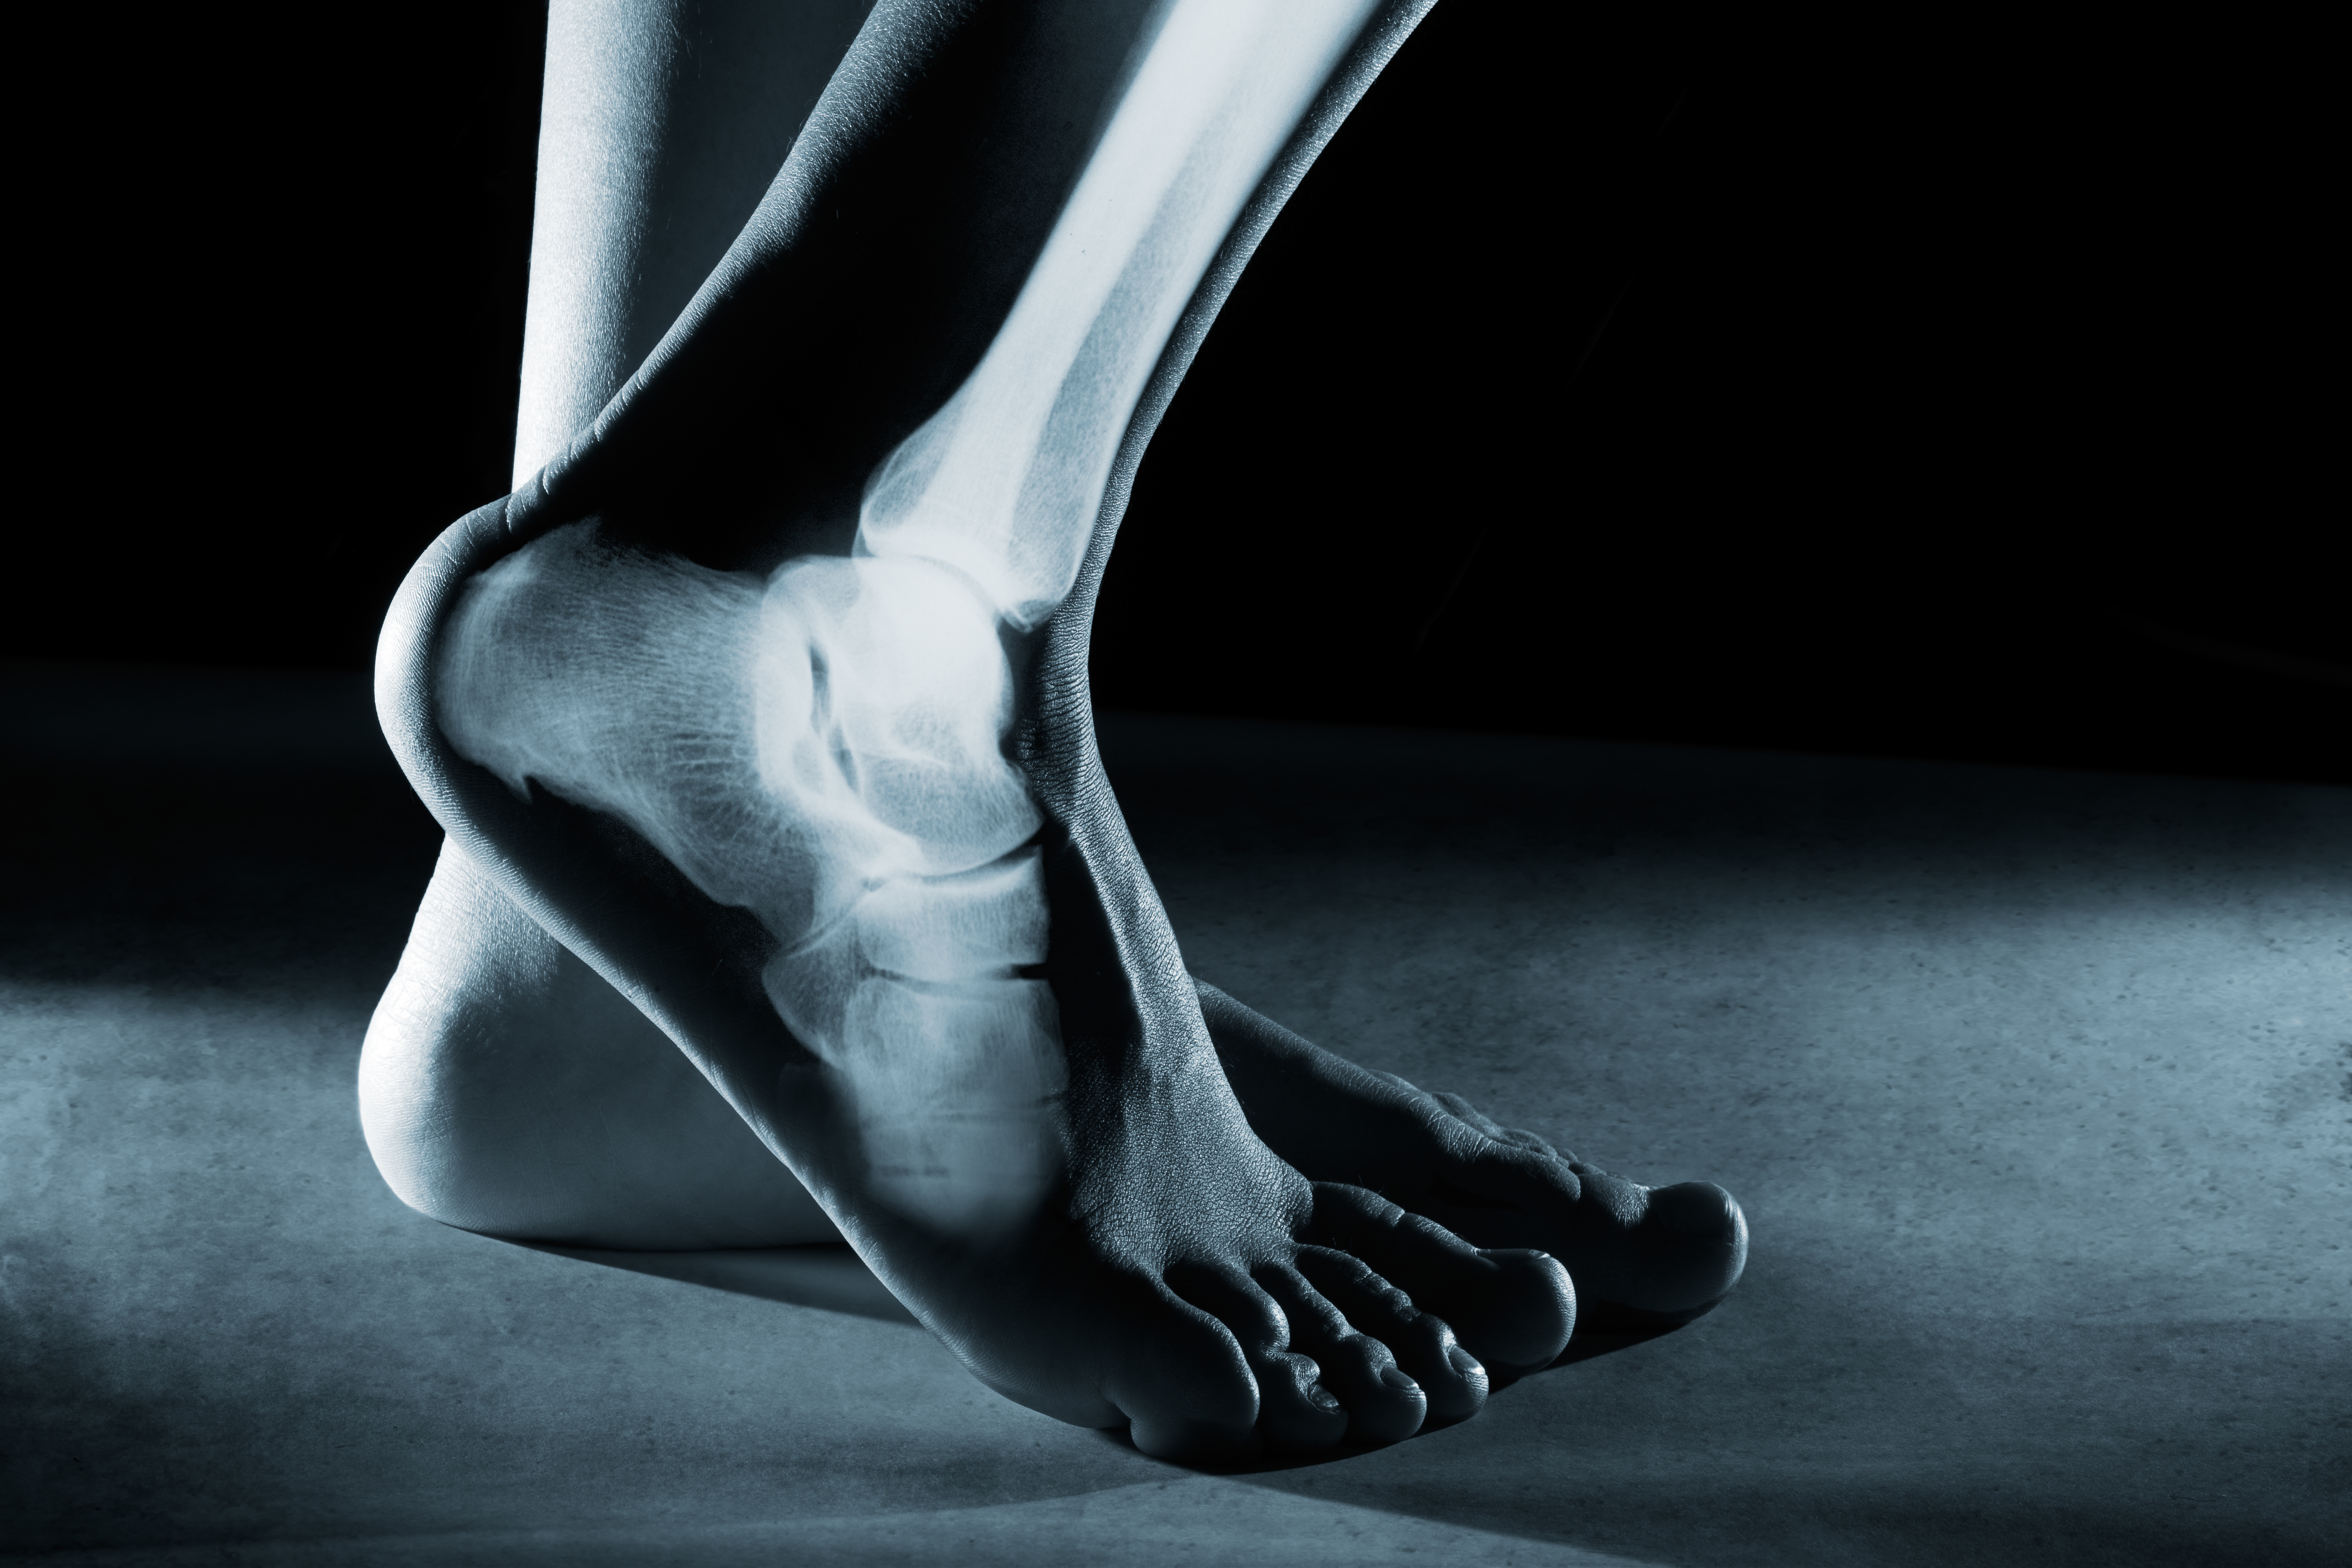 Human foot ankle and leg in x-ray, on gray background